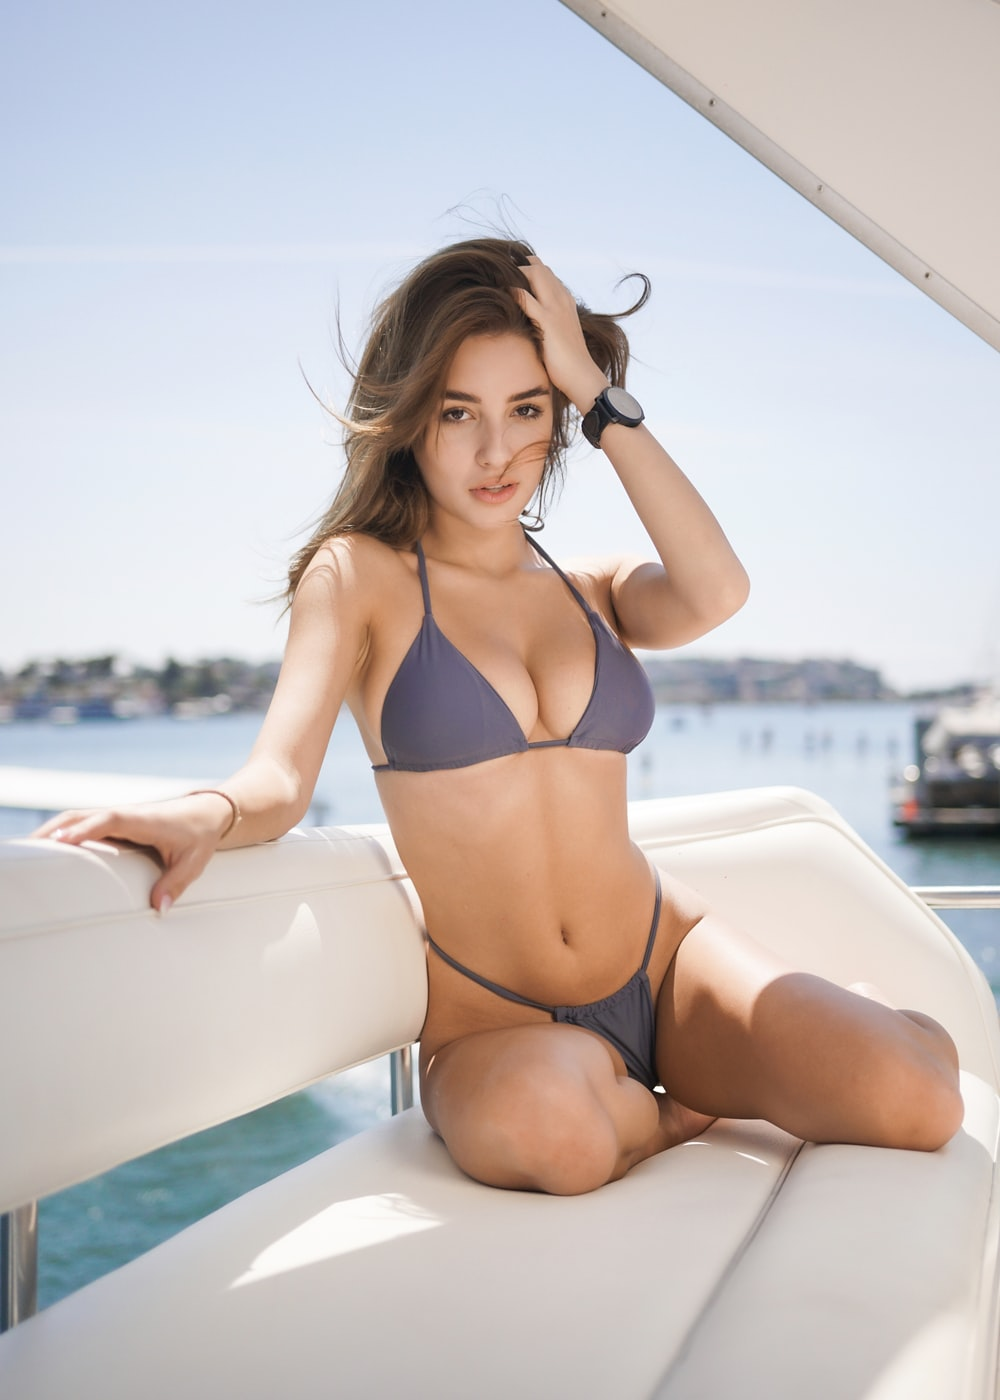 20 Bikini Pictures Images [HQ] Download Photos on Unsplash 1000x1400